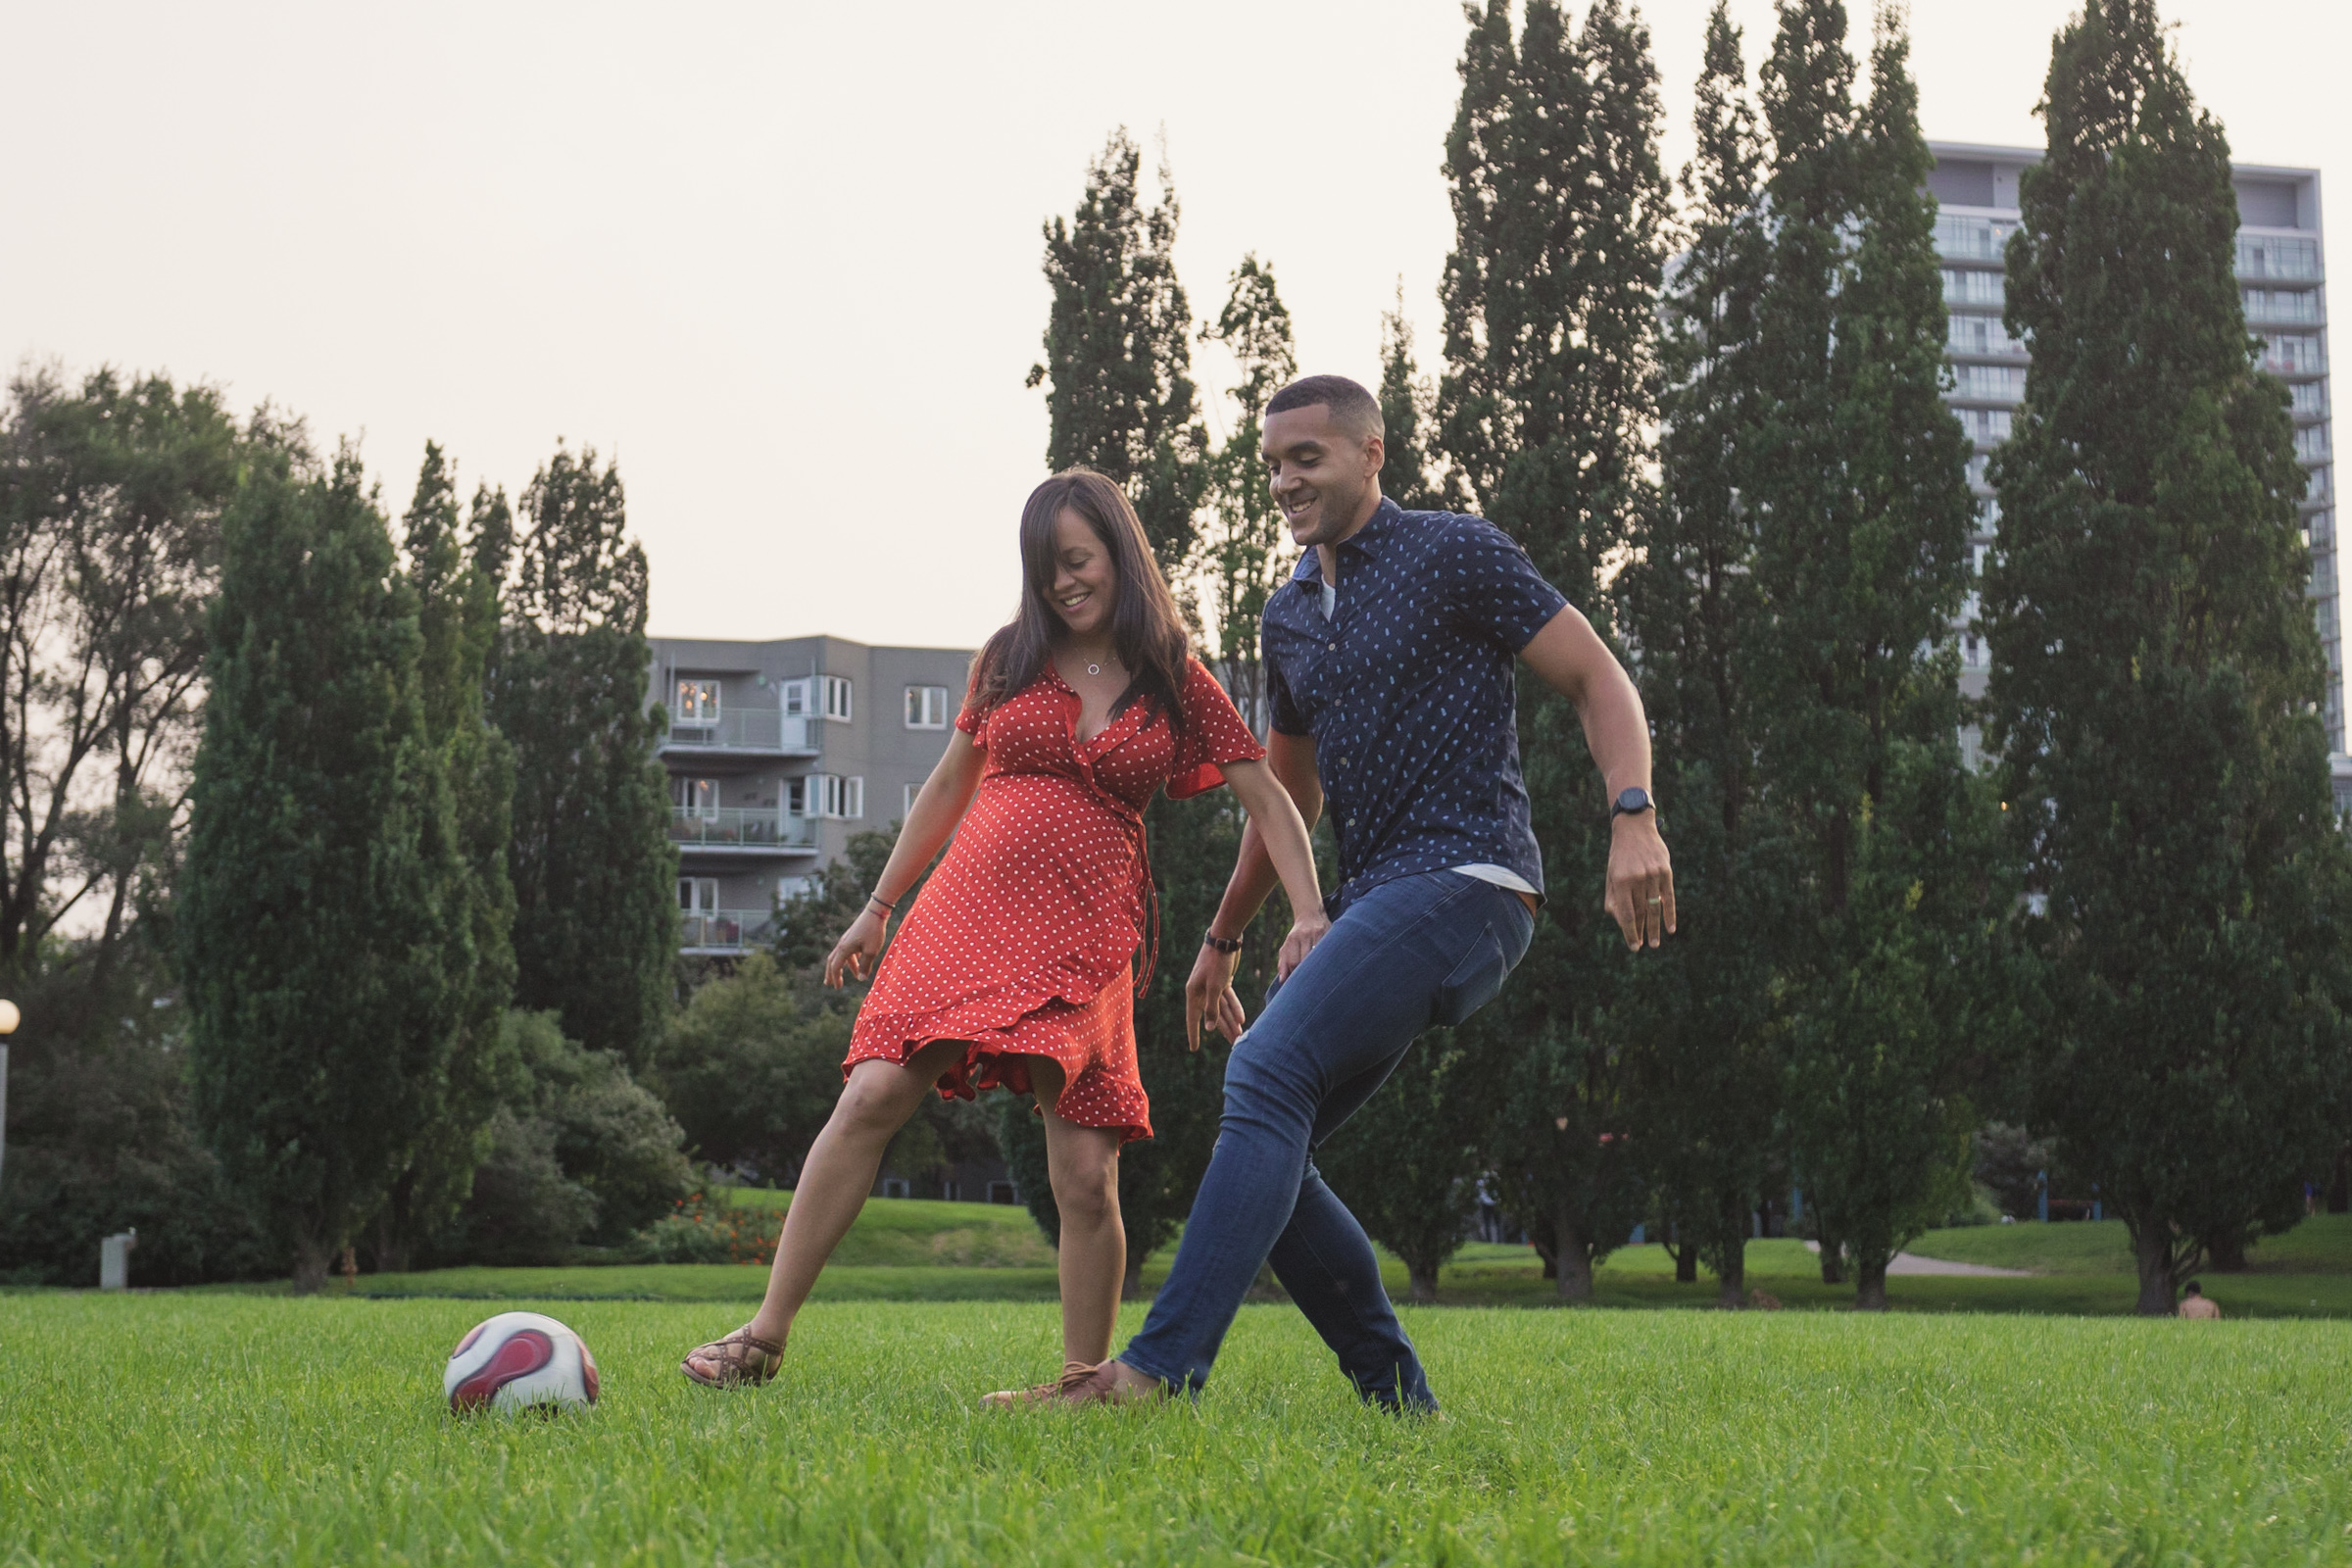 pregnant couple playing soccer together outside